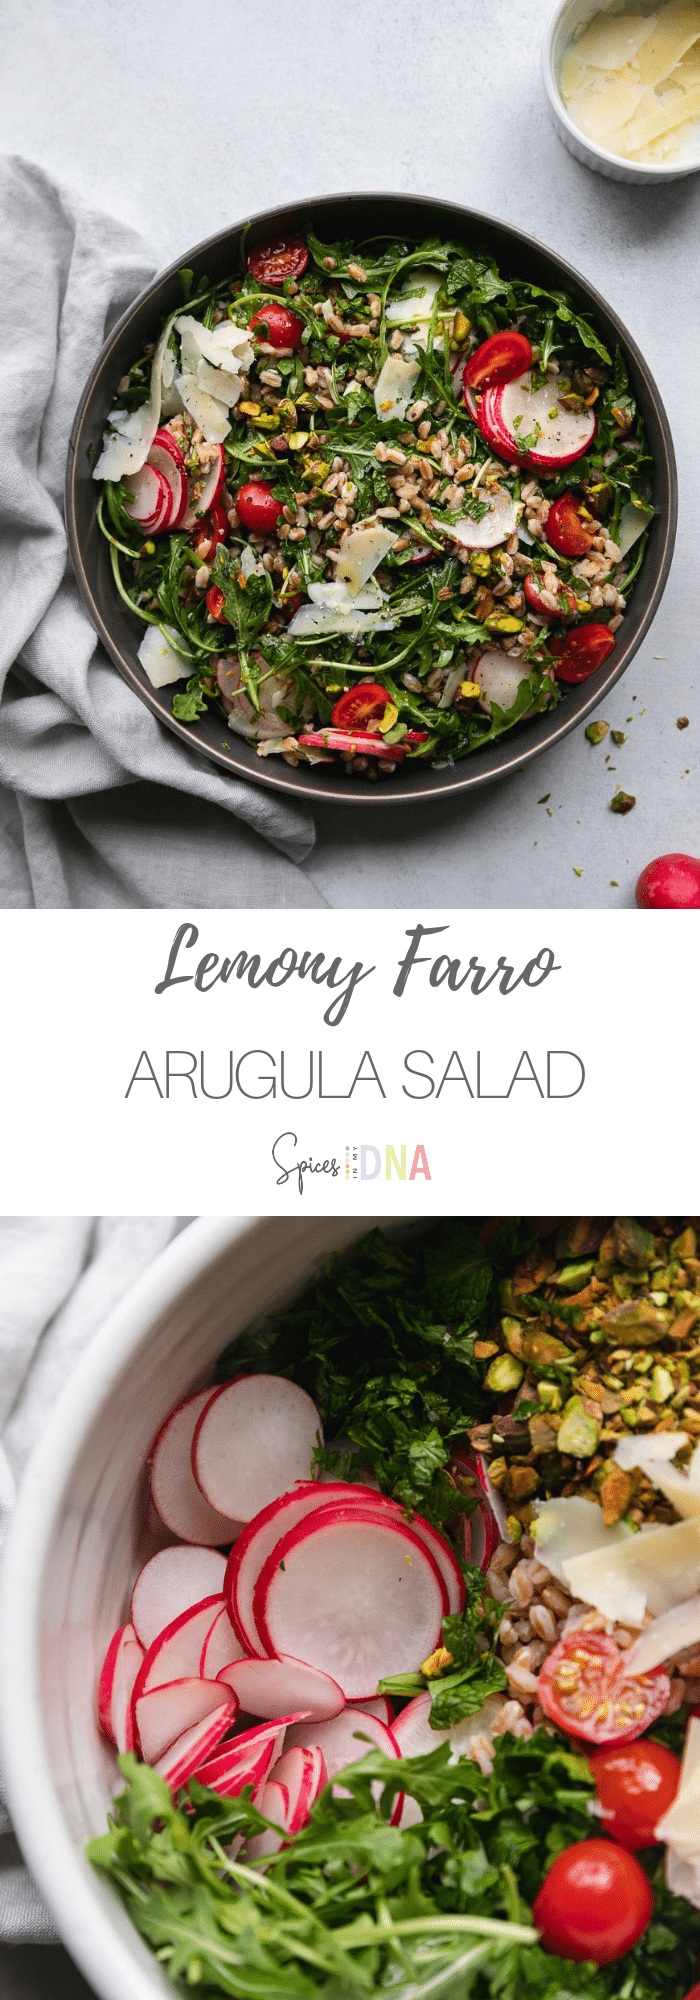 This Lemony Farro Arugula Salad is a simple, refreshing salad with so much freshness, flavor, and texture! It's filled with grape tomatoes, thinly sliced radishes, chopped pistachios, shaved parmesan, lots of chopped parsley, fresh mint, and a super easy and delicious lemon vinaigrette! #salad #farrosalad #vegetarian #plantbased #farro